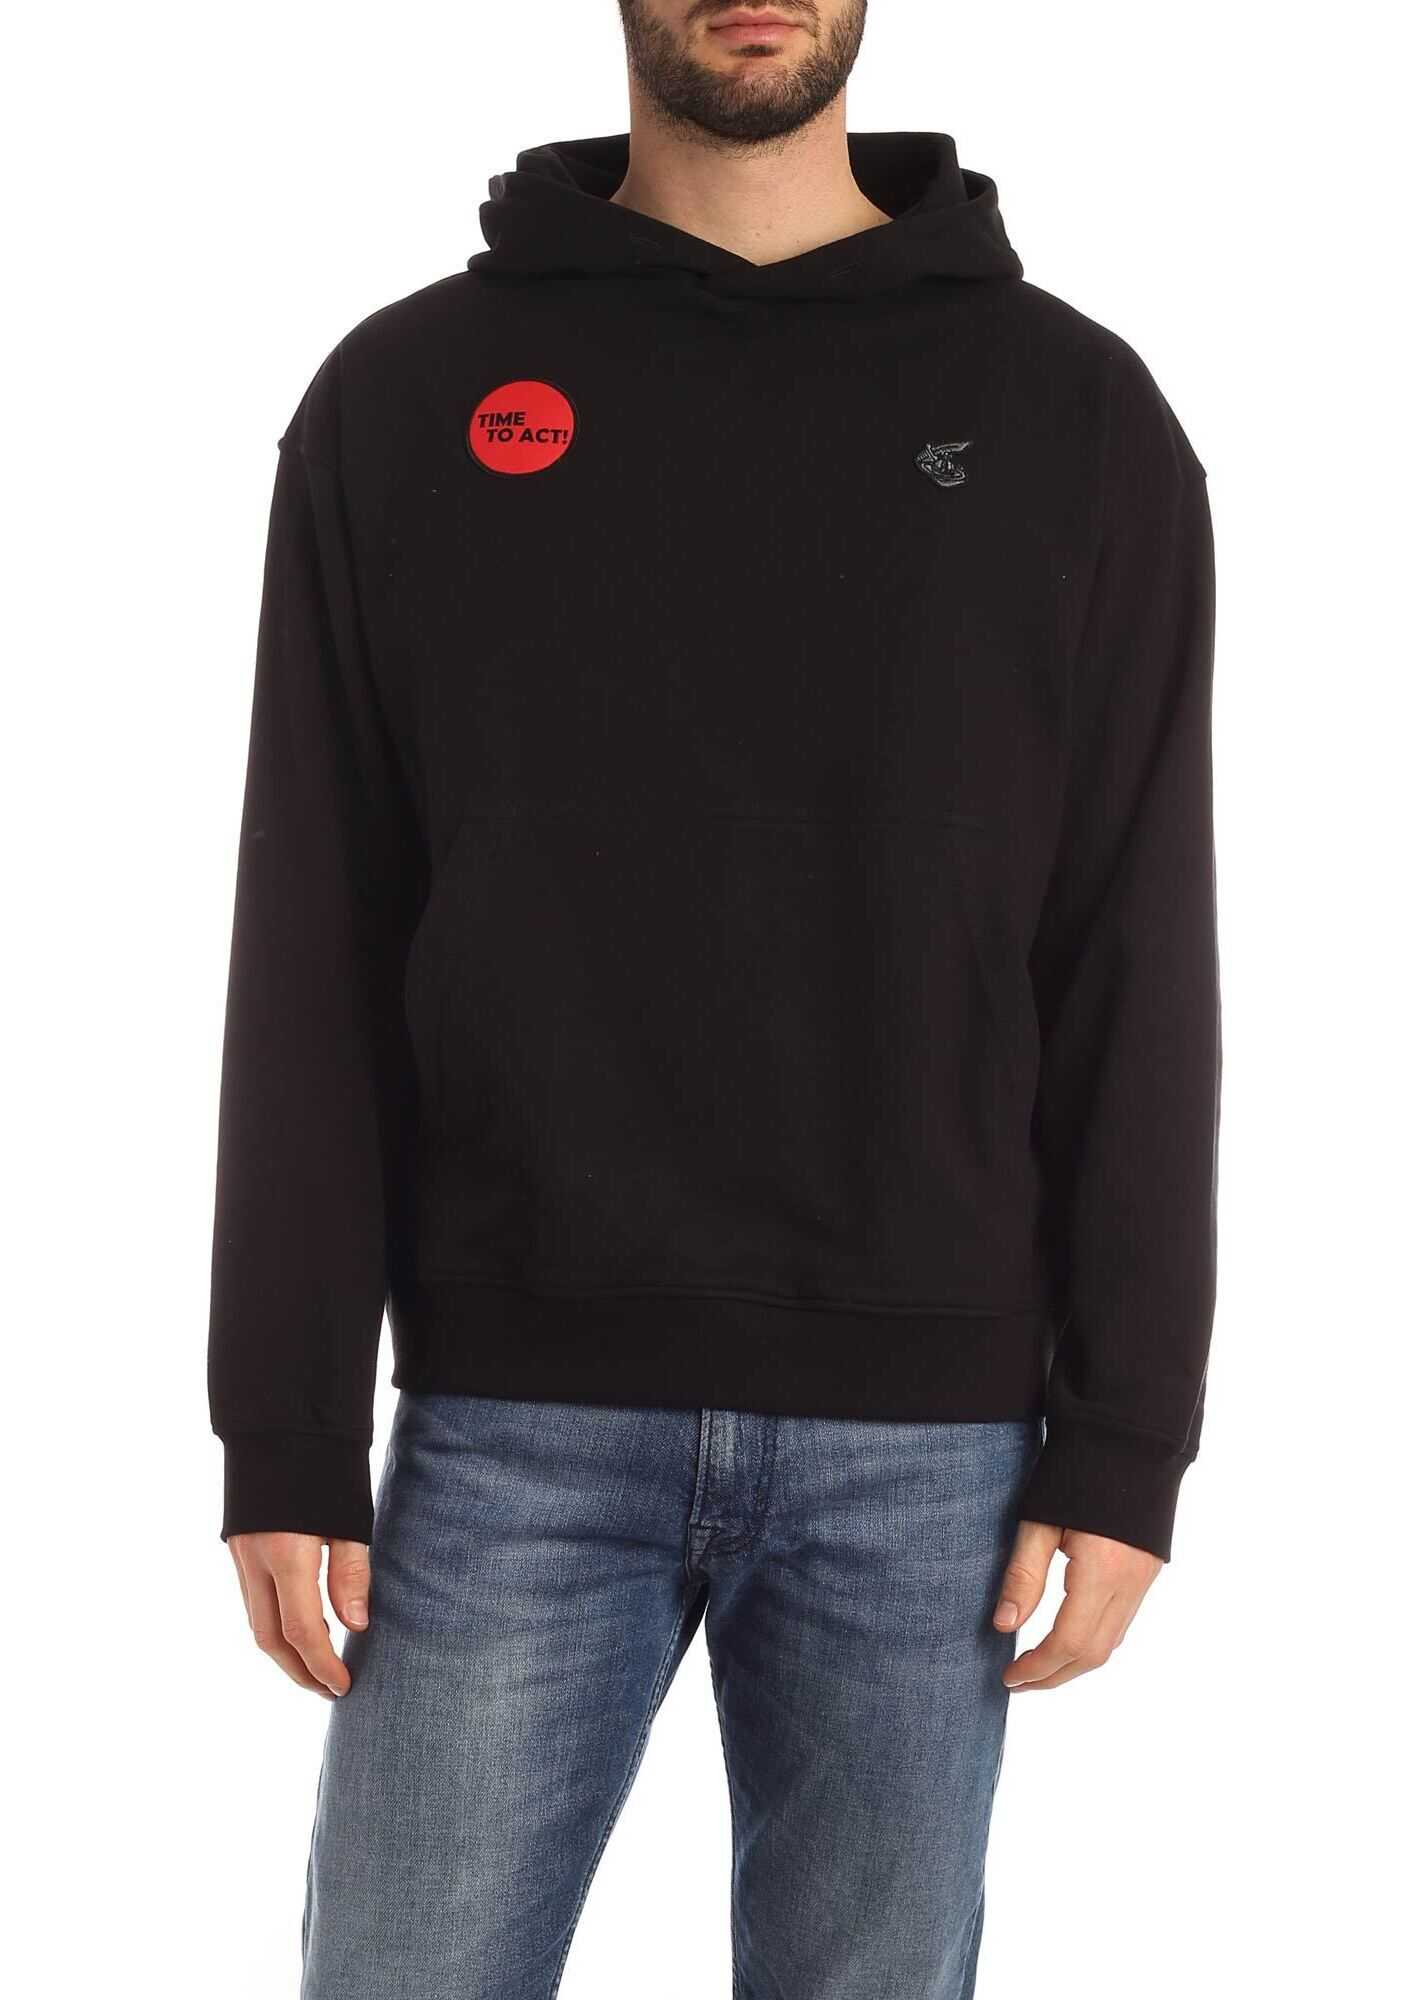 Vivienne Westwood Anglomania Time To Act Sweatshirt In Black Black